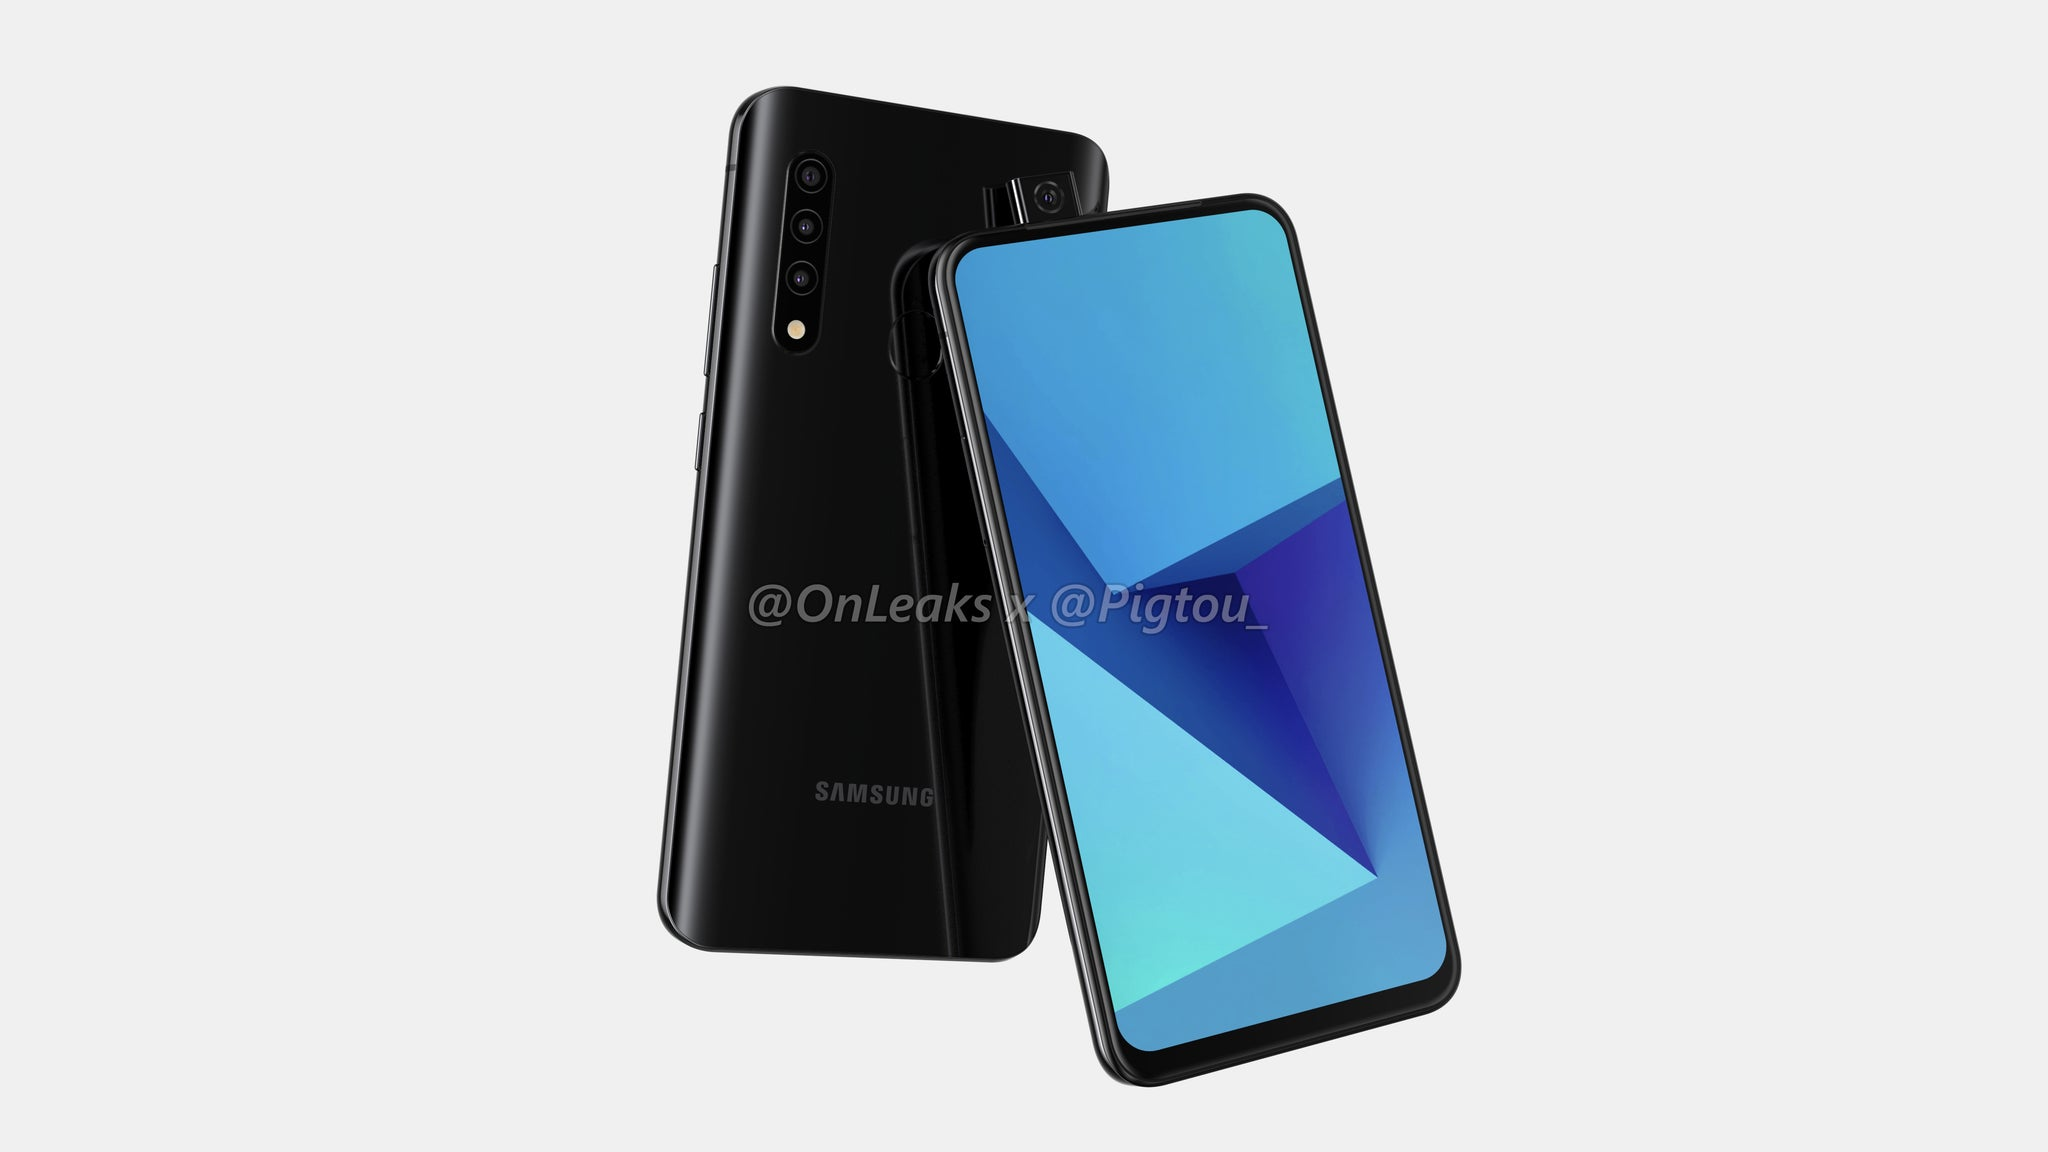 Samsung Galaxy A series with pop-up camera - front and back2